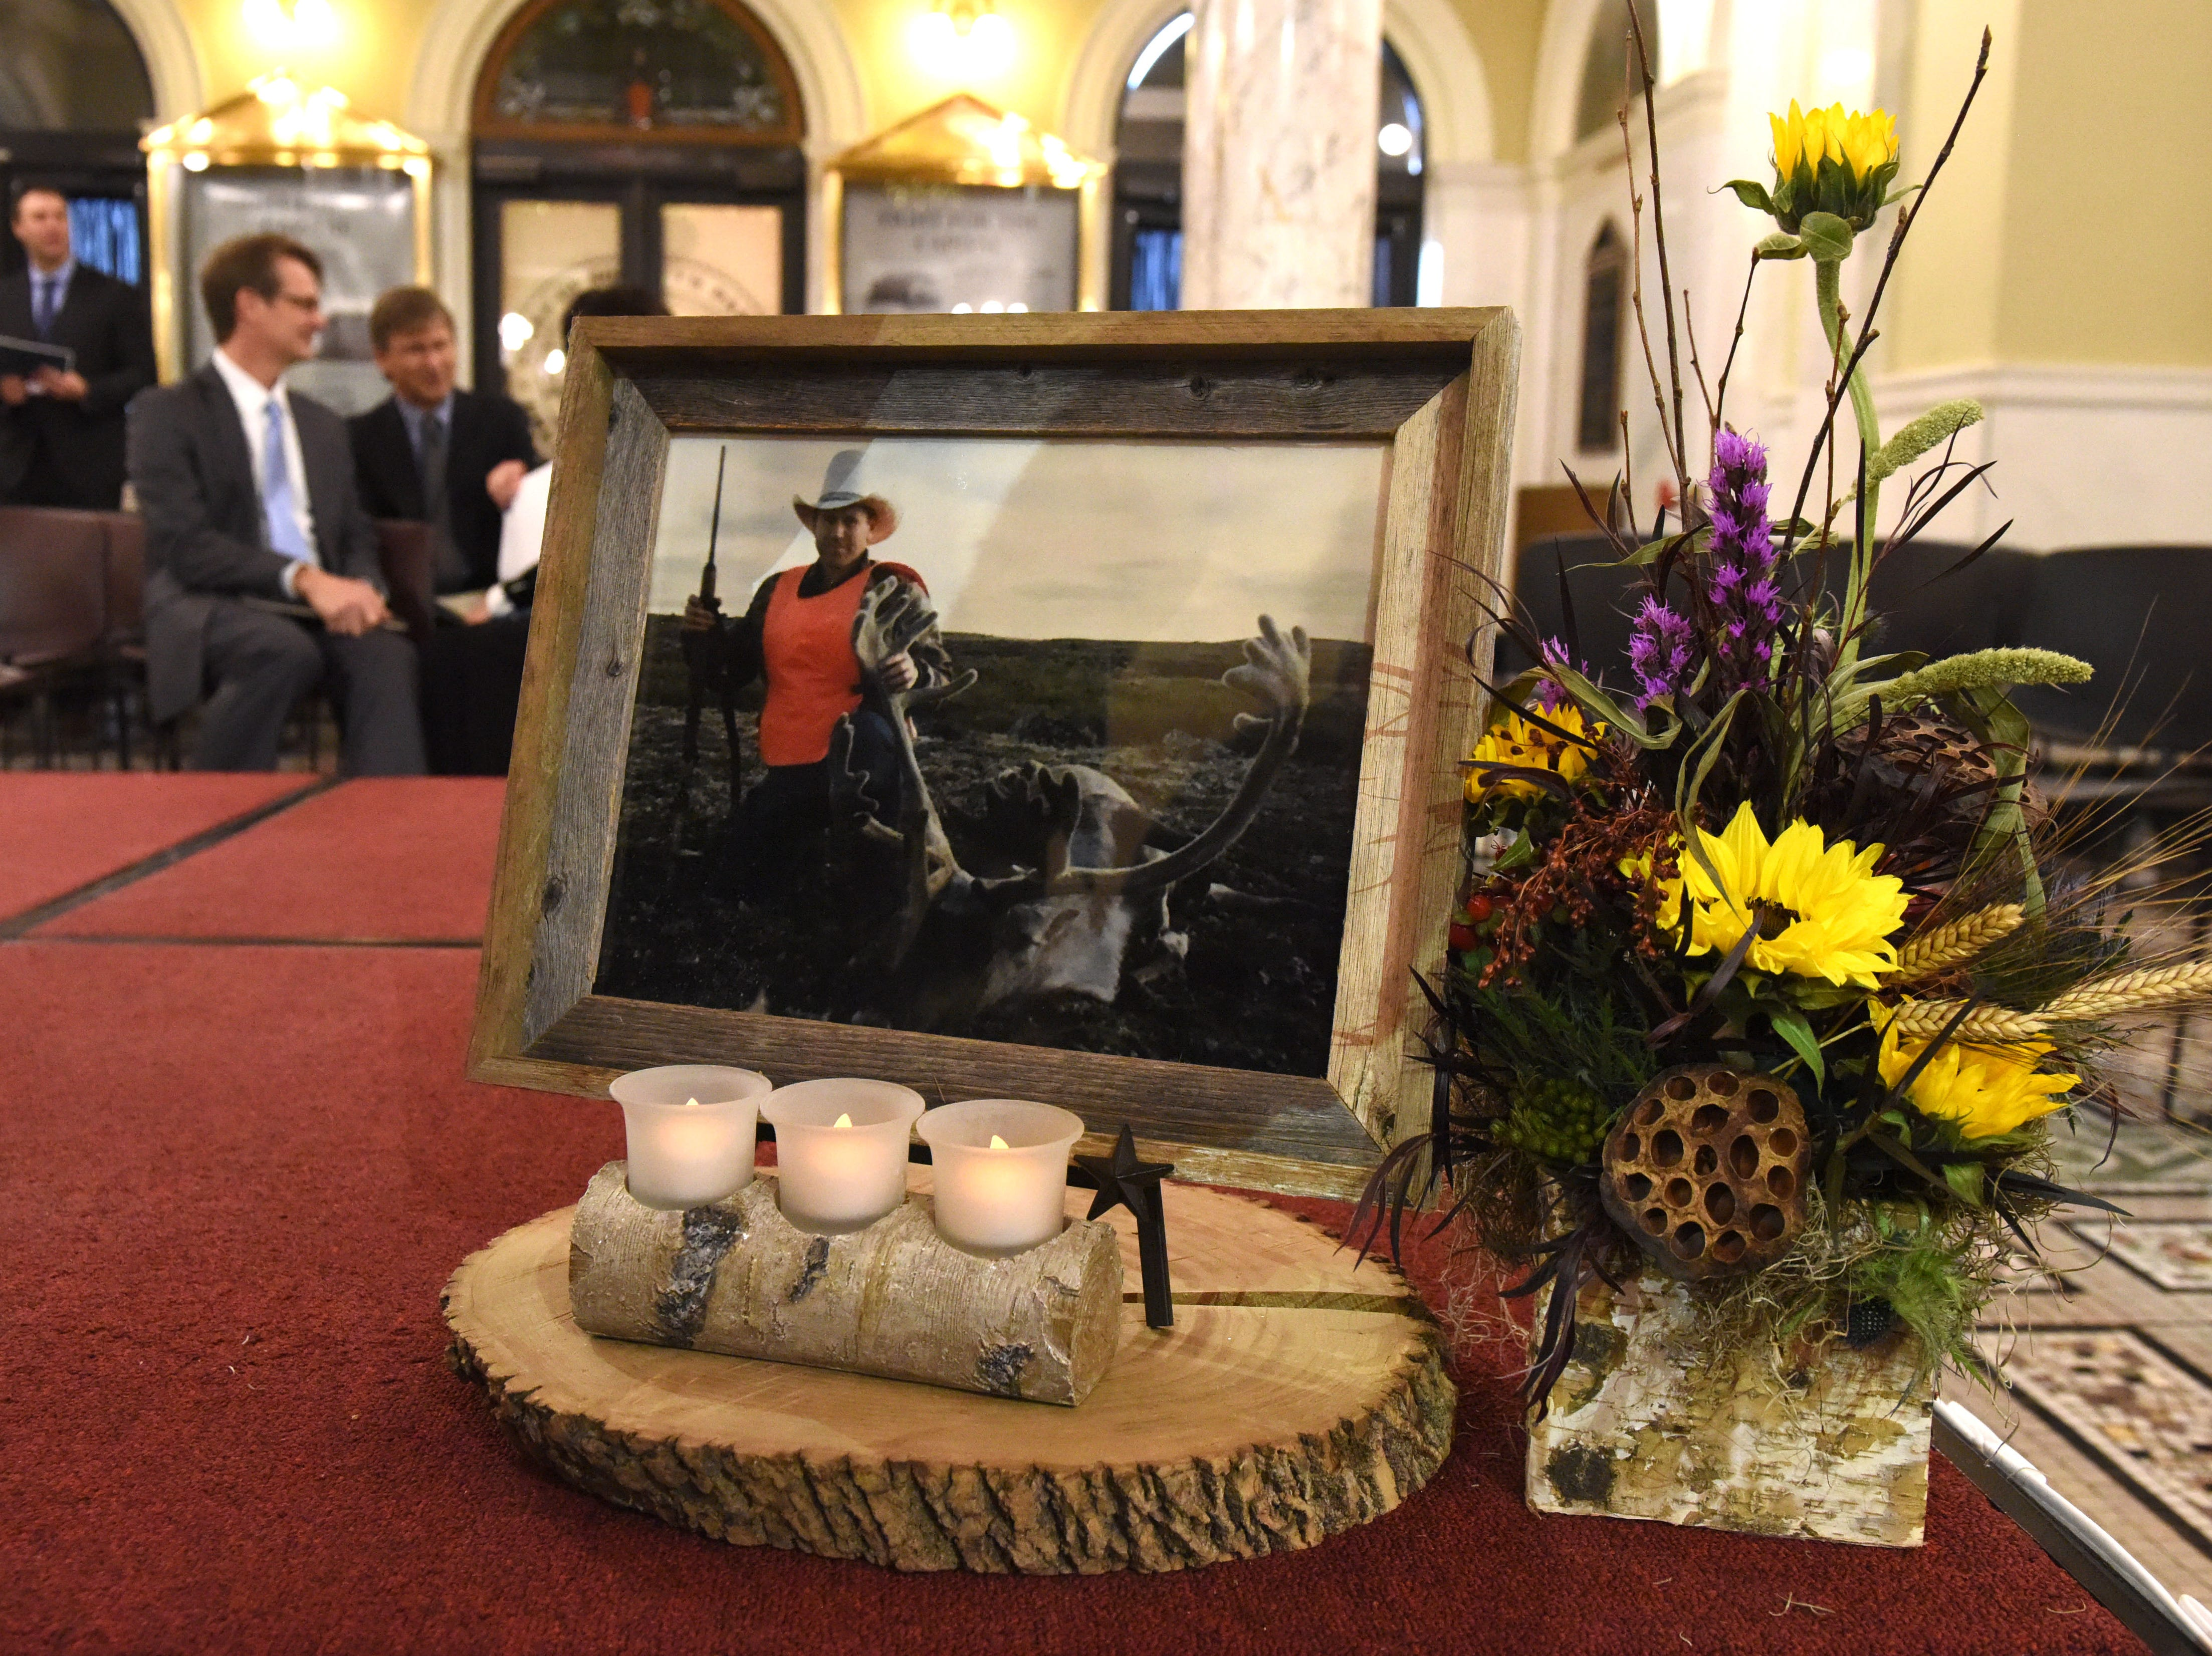 A photo of Gov. Kristi Noem's father is displayed on the platform where she gave her Oath of Office Saturday, Jan. 5, 2019 in Pierre, S.D.